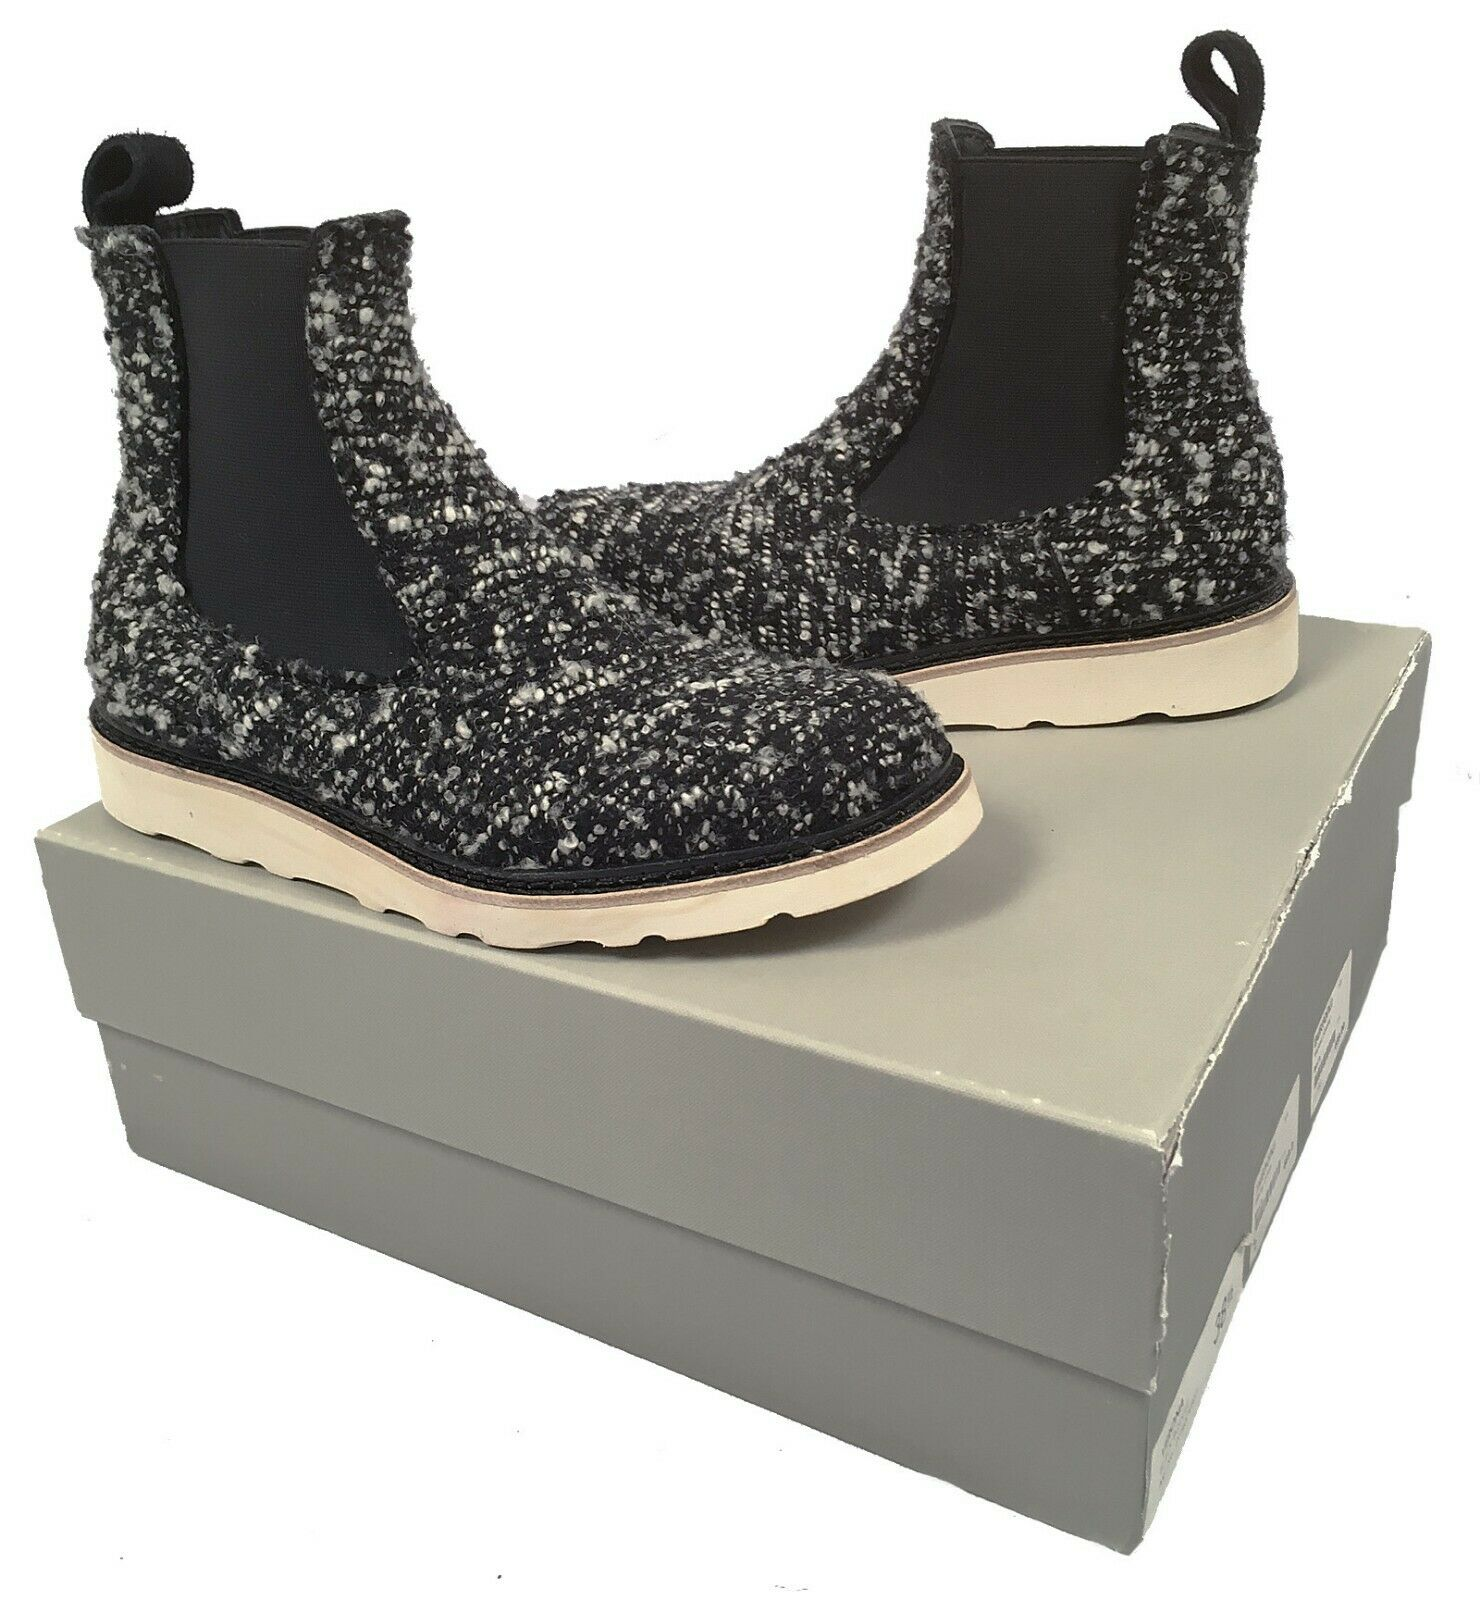 New  469 469 469 Diemme Verona Womens Boots   Spotted Pony Hair or Black & White Boucle 736c25